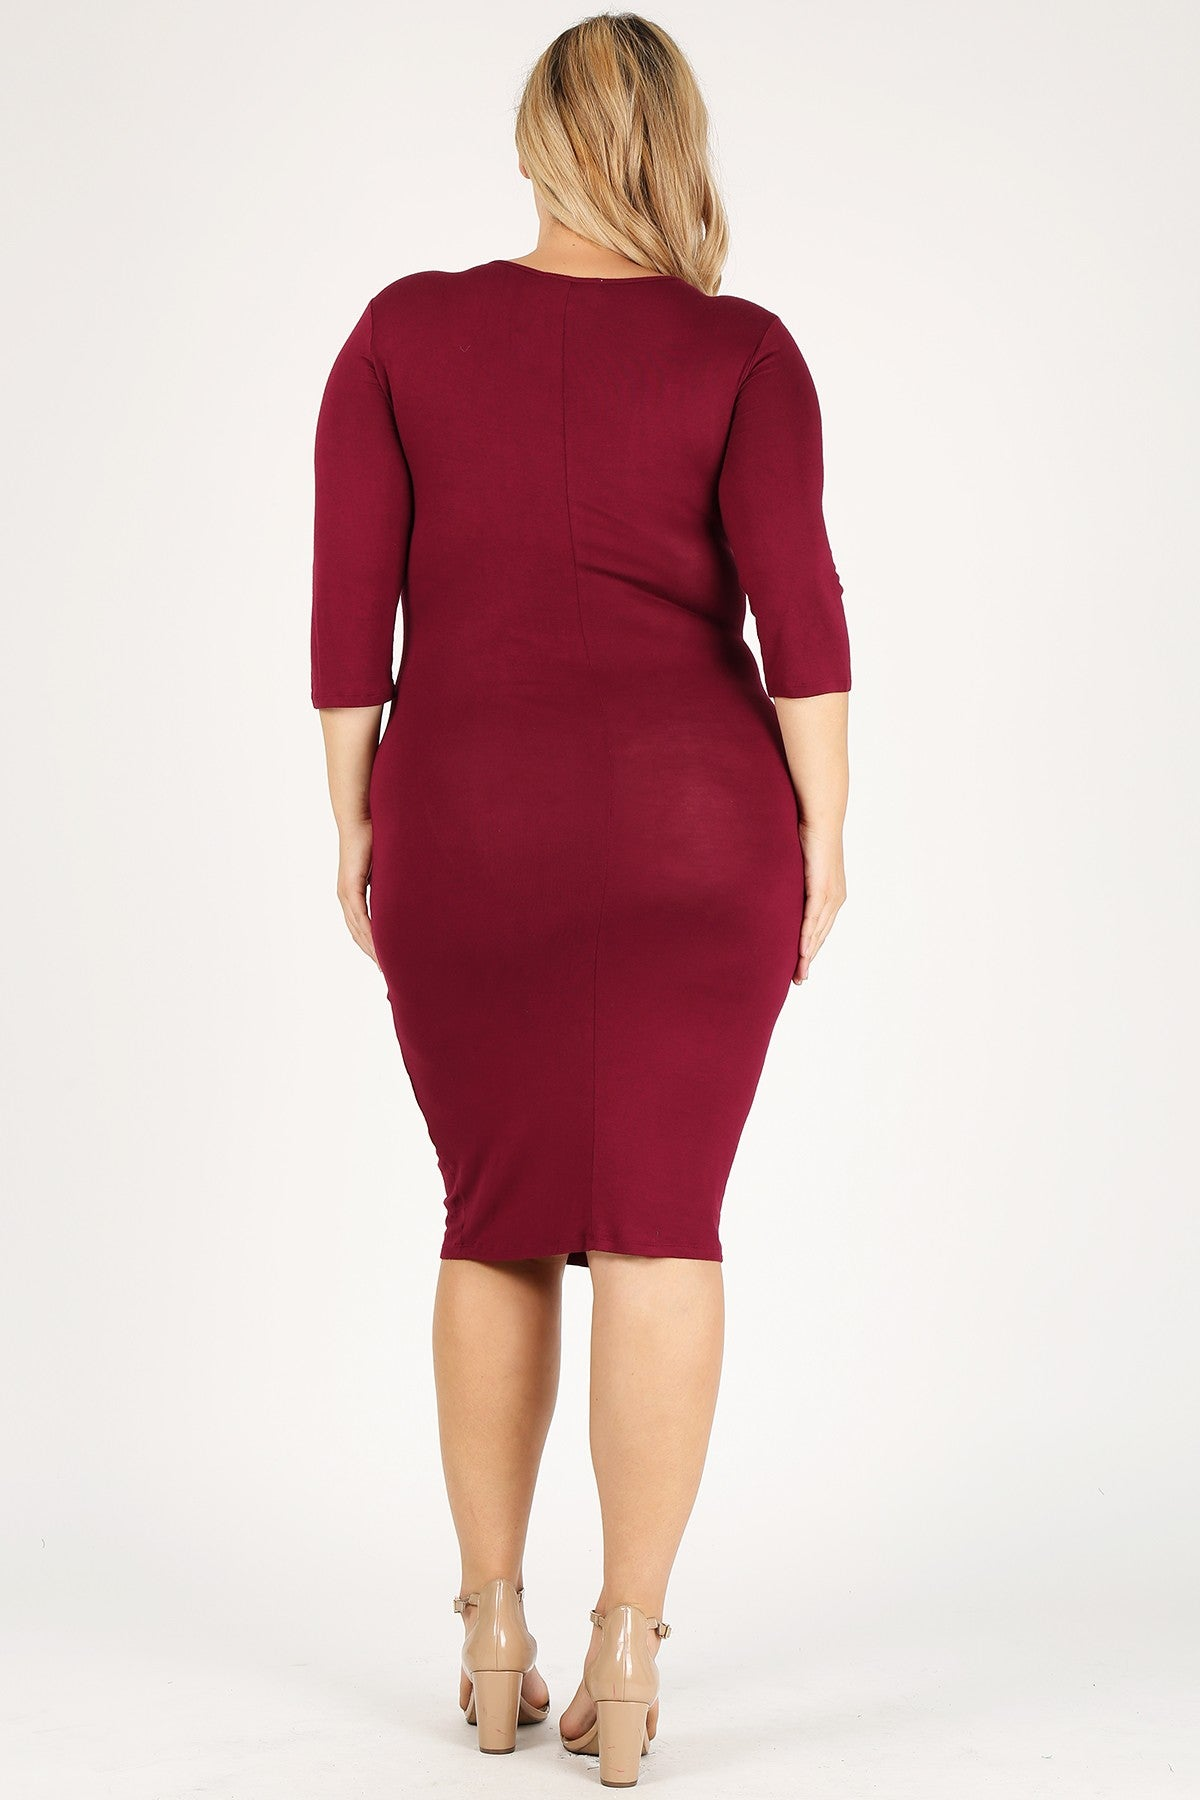 Plus size bodycon 3/4 length sleeve knit midi dresses